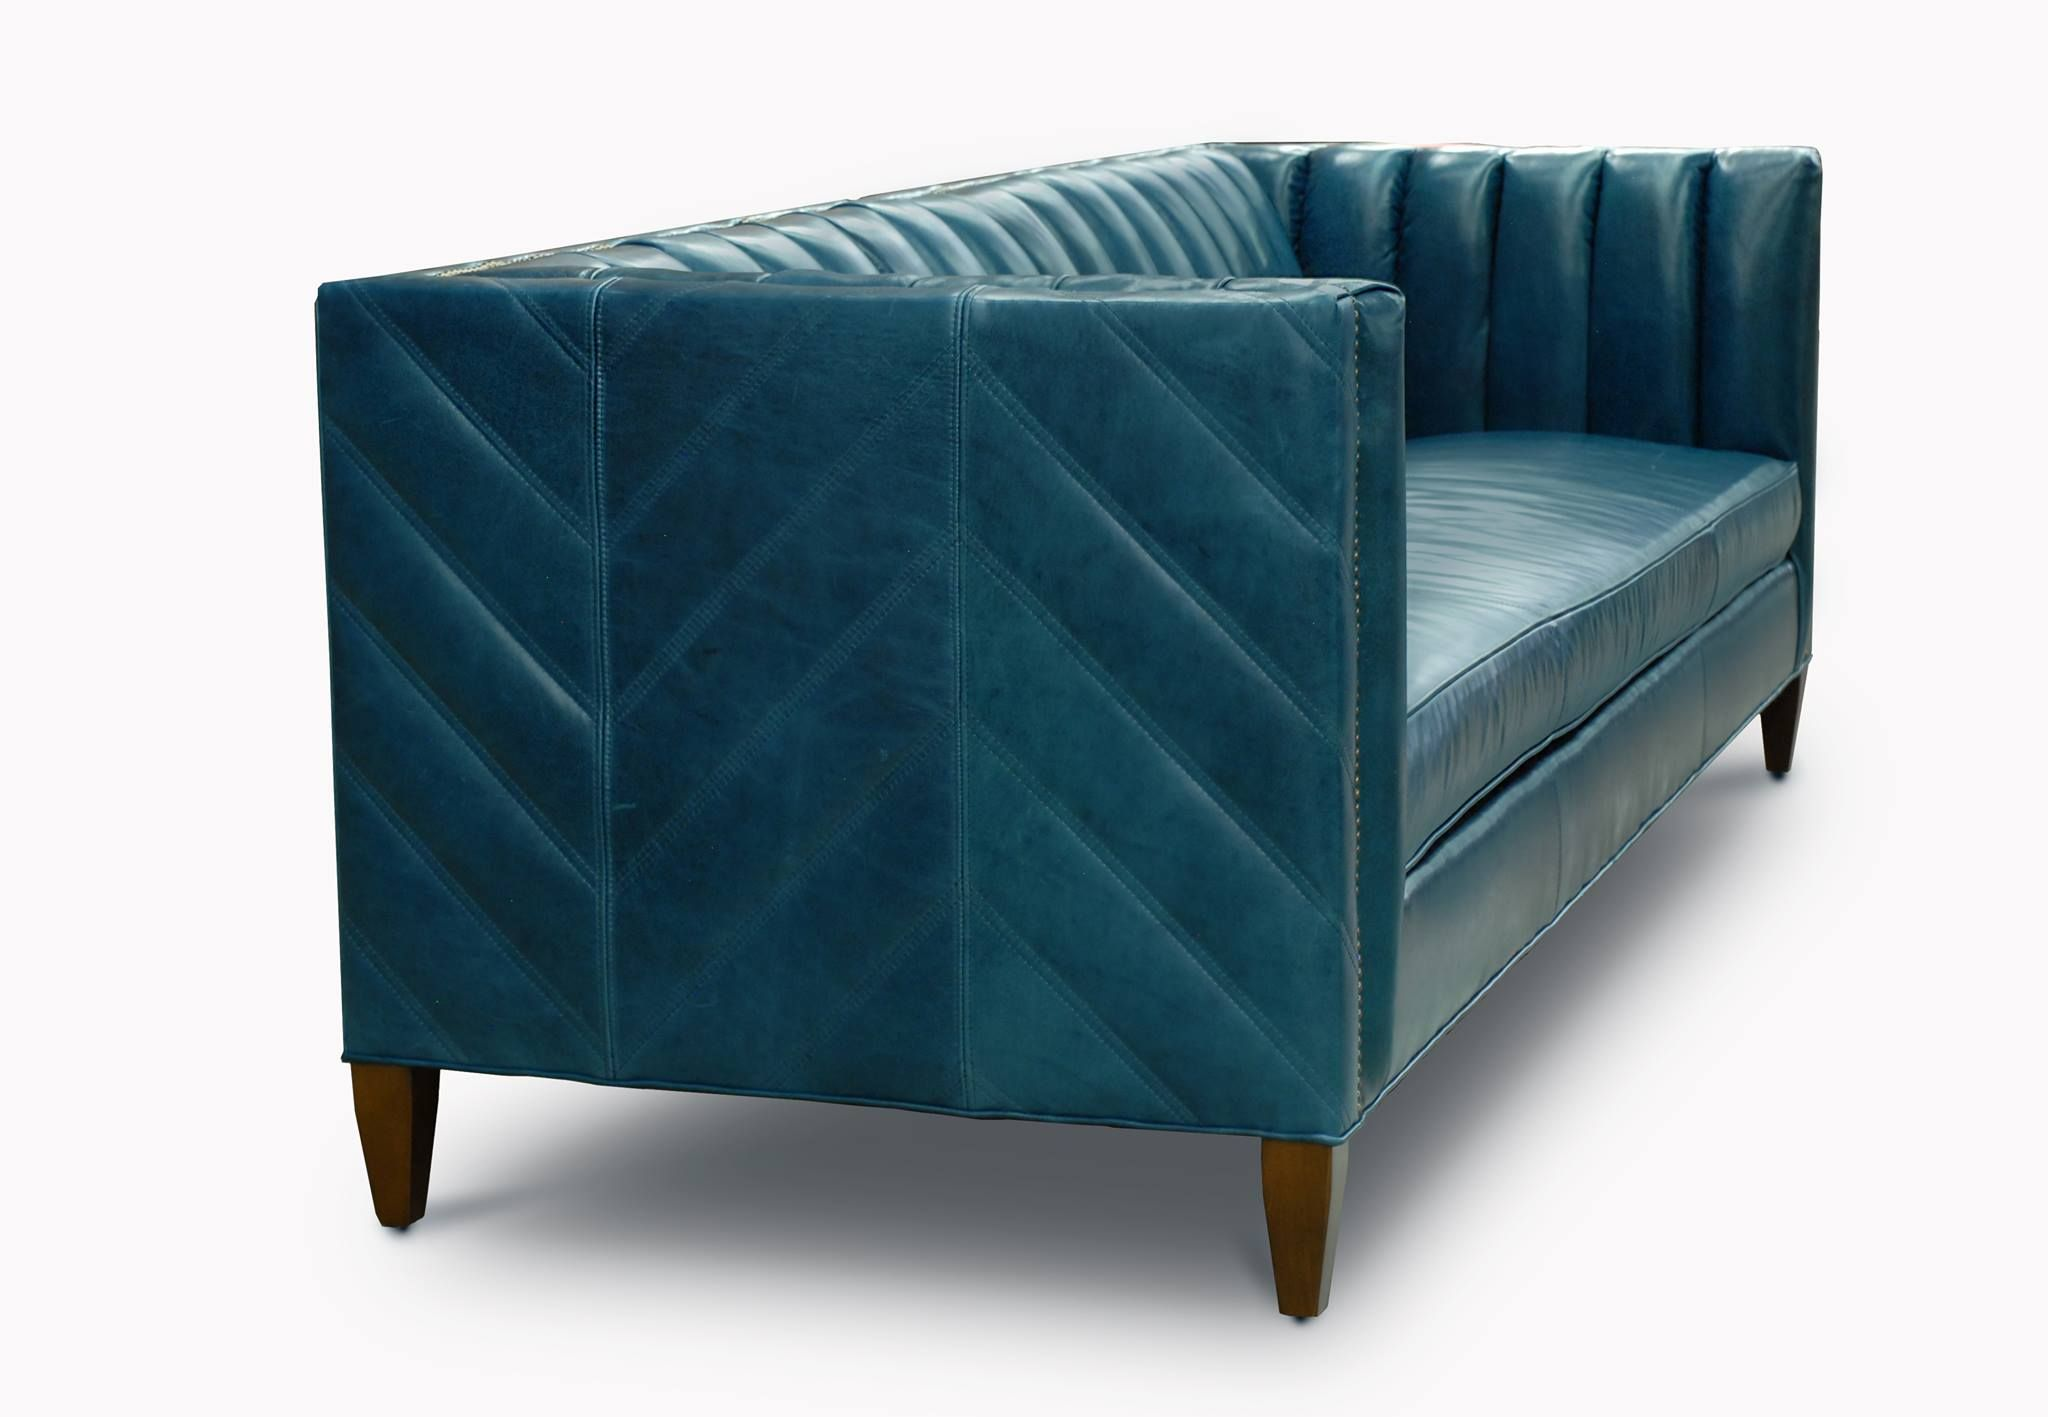 The Lambert Custom Channel Tufted Mcm Sofas More Of Iron Oak Blue Sofa Chair Upholstered Furniture Outdoor Dining Chair Cushions